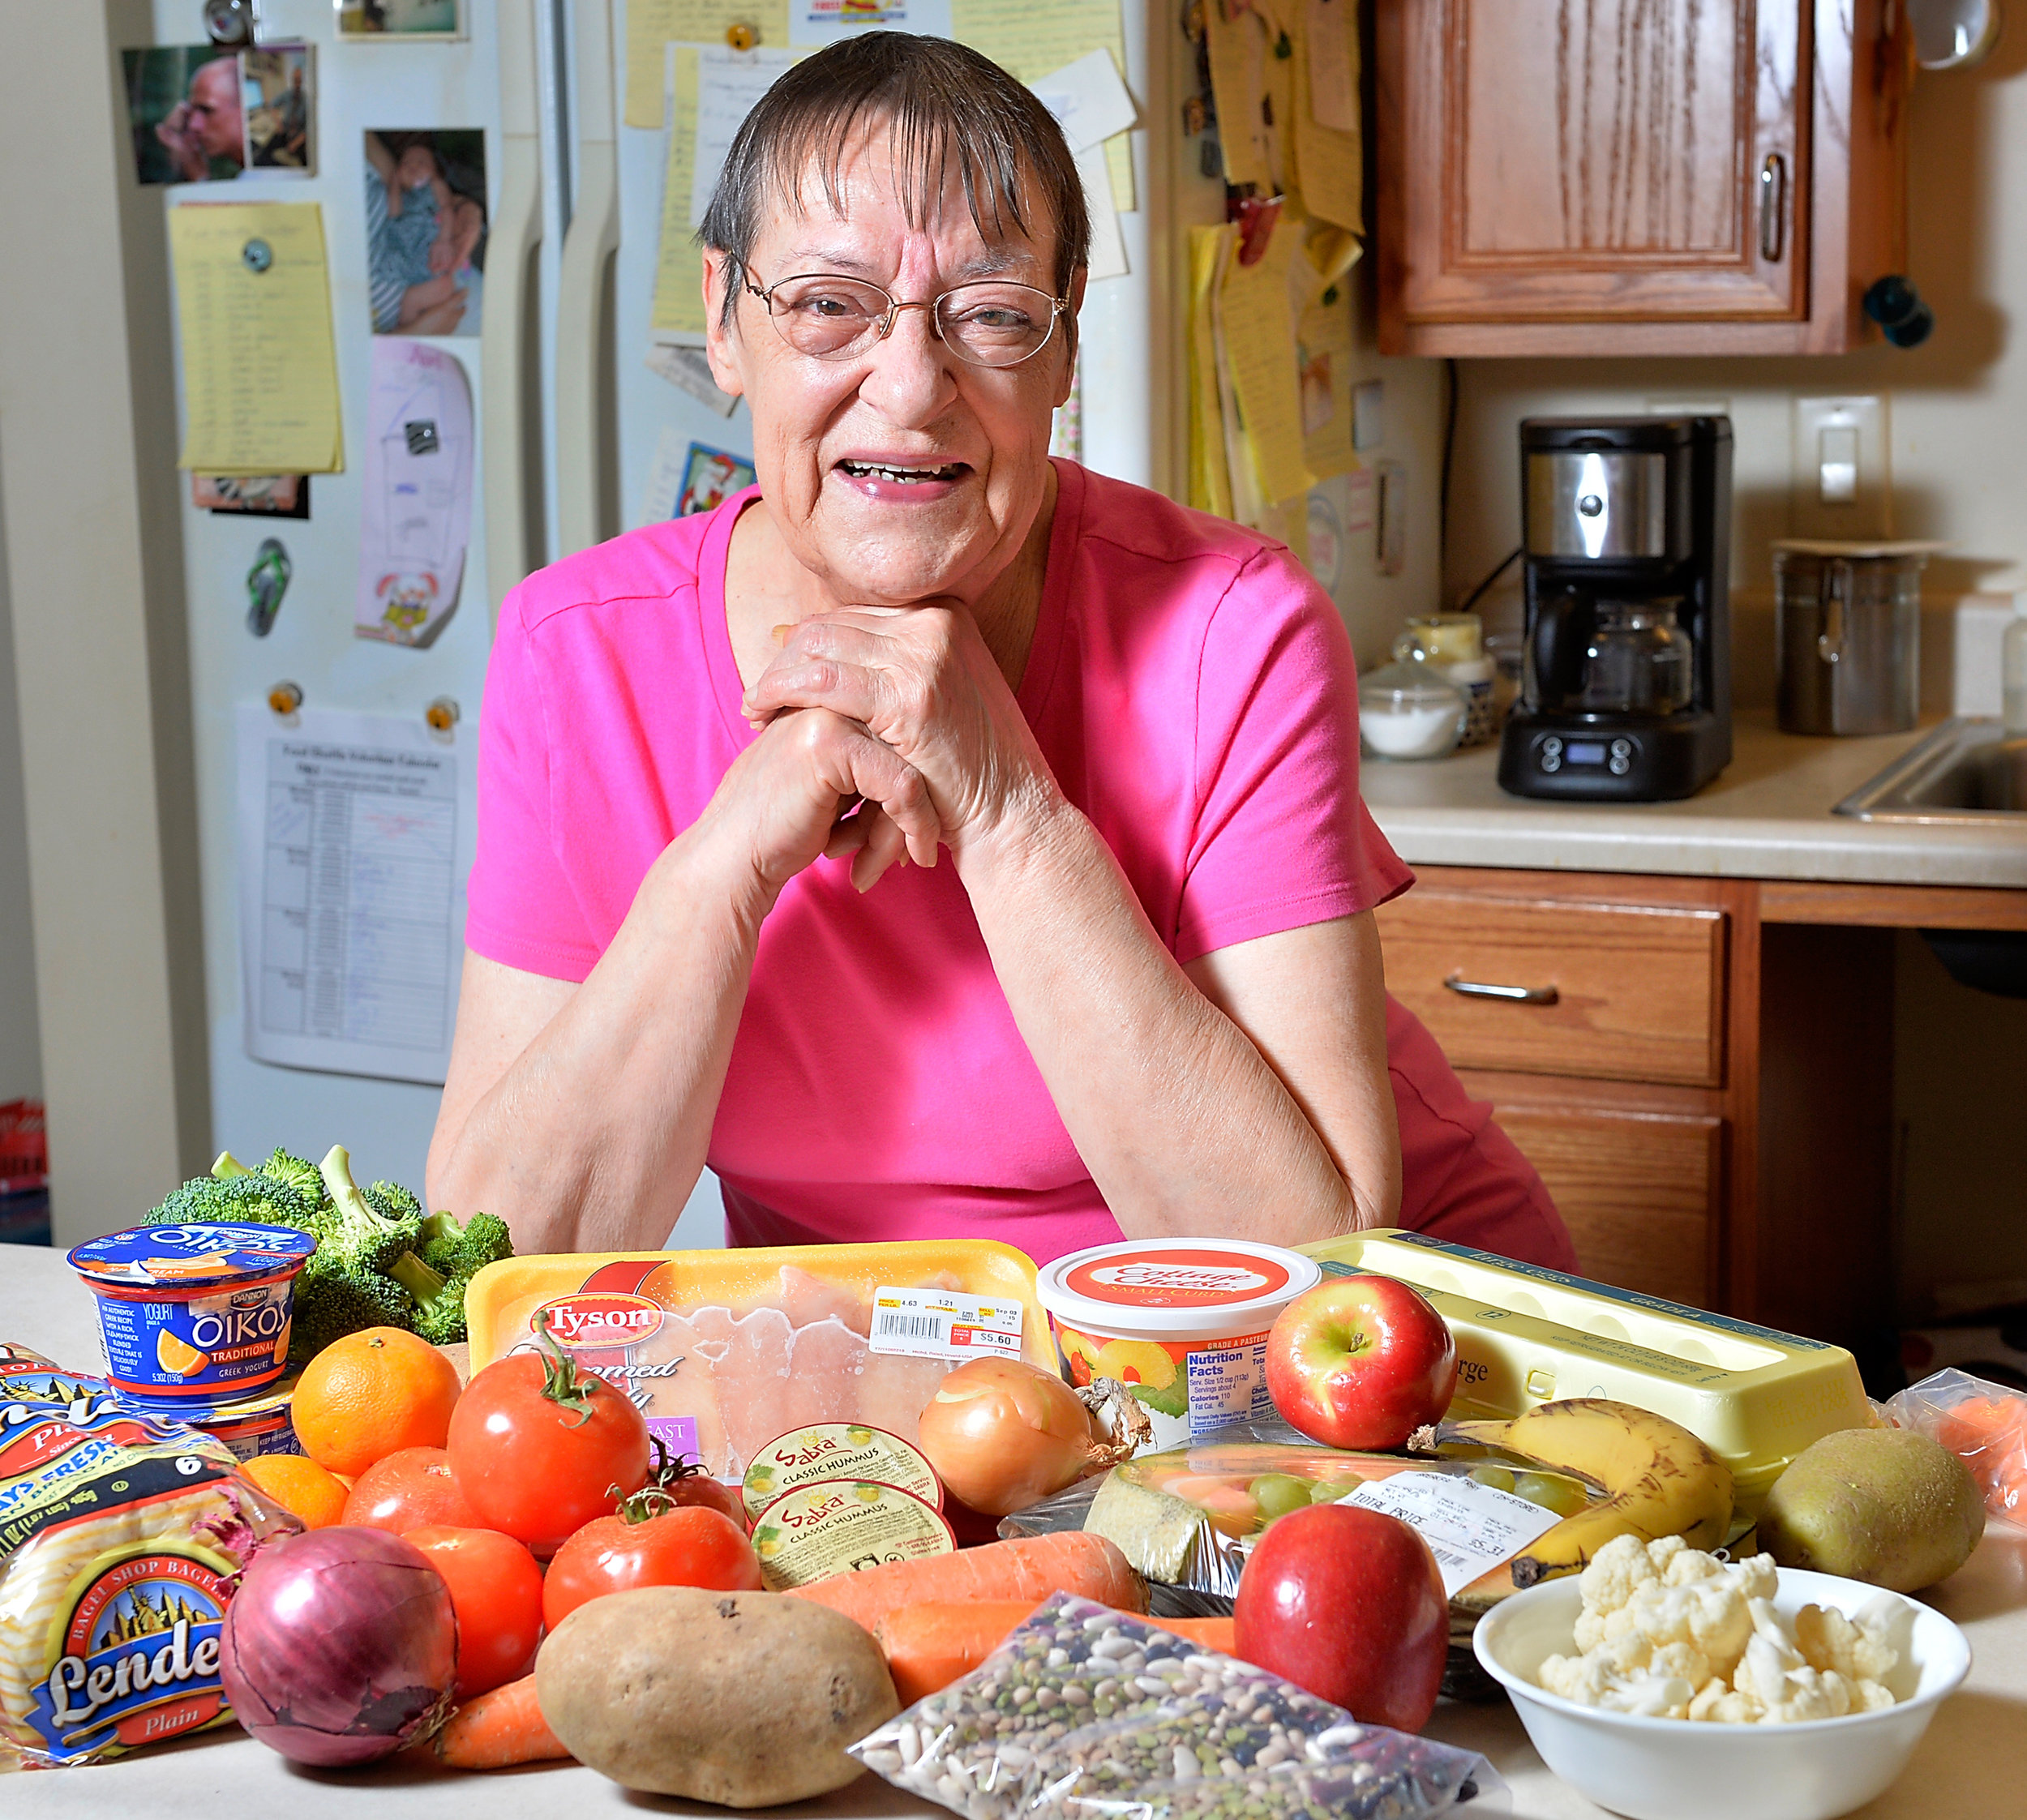 InterFaith Food Shuttle's volunteer and recipient Florence Calabrese. (Photo by Sara D. Davis for InterFaith Food Shuttle)